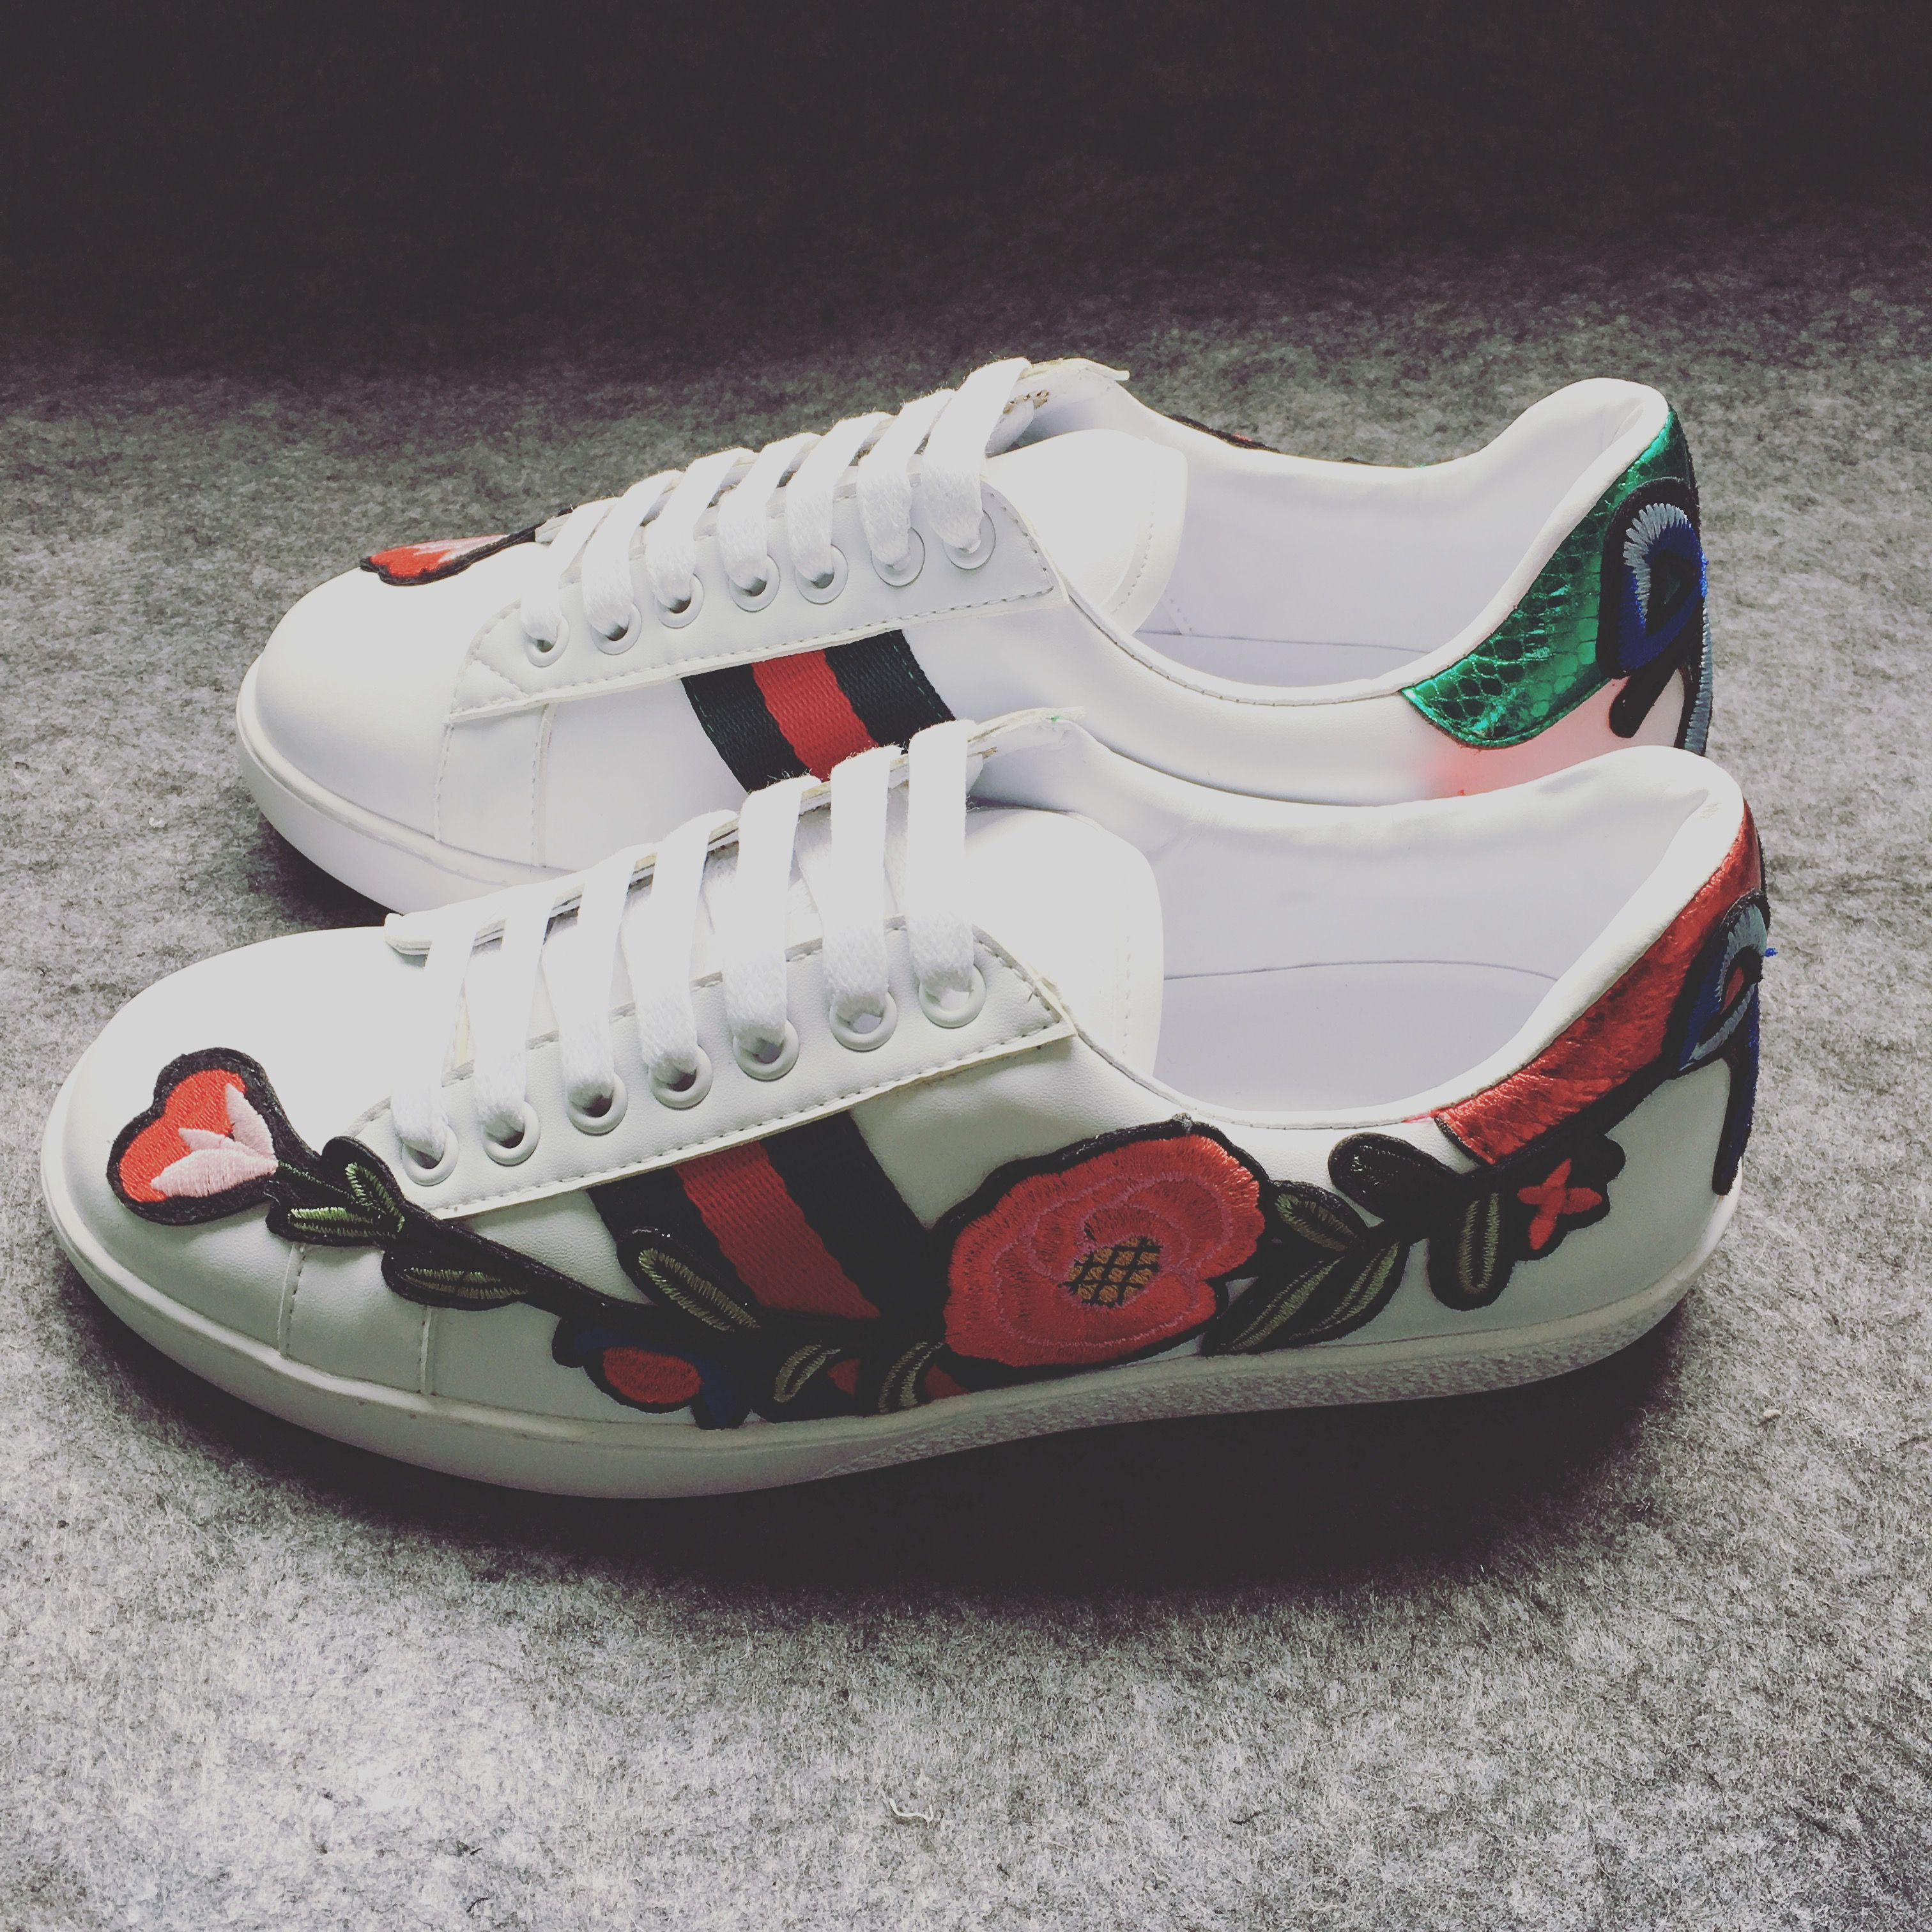 Flowers blooming on white shoescustomshoes custom chuck taylor flowers blooming on white shoescustomshoes mightylinksfo